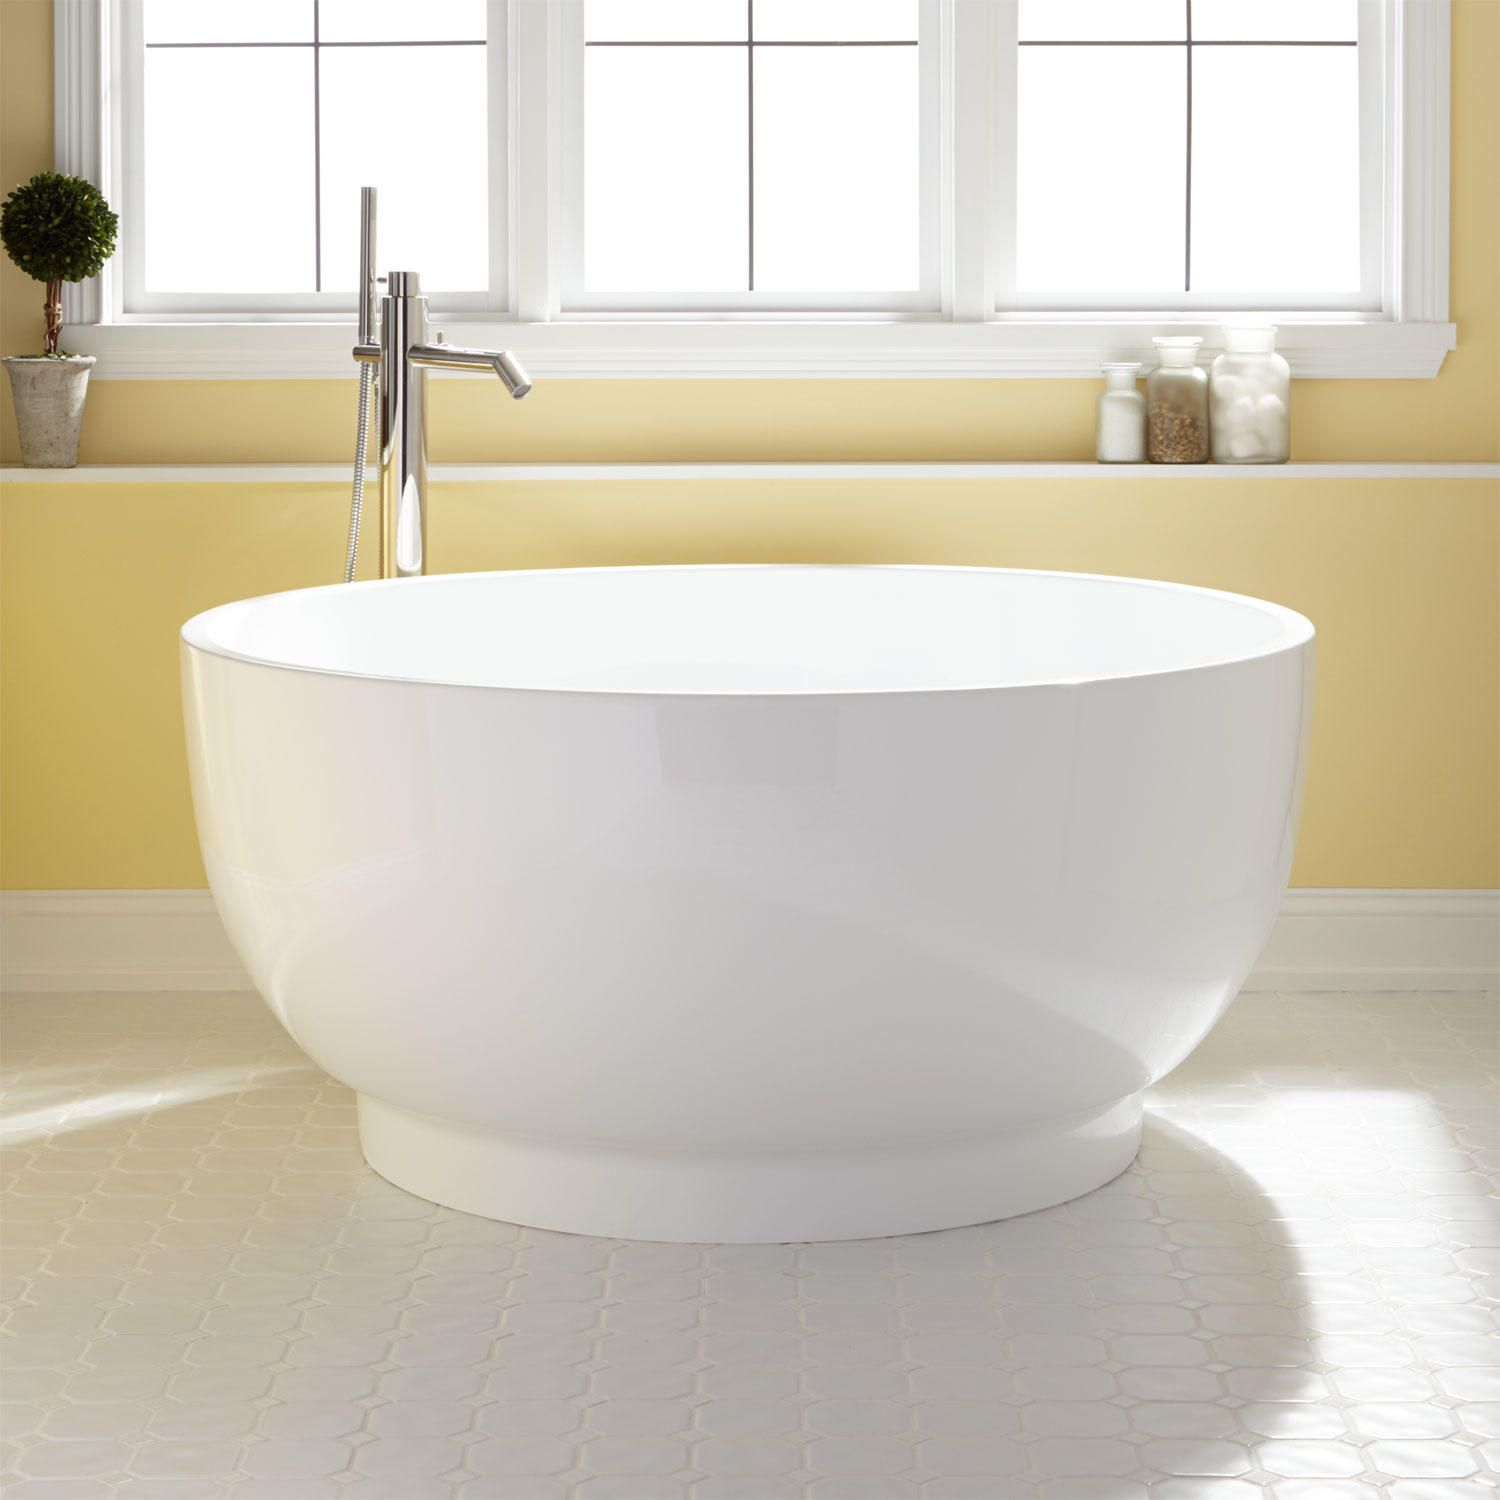 Most Seen Pictures Featured in Exquisite Japanese Style Bathroom Design,  Its Comfy And Relaxable